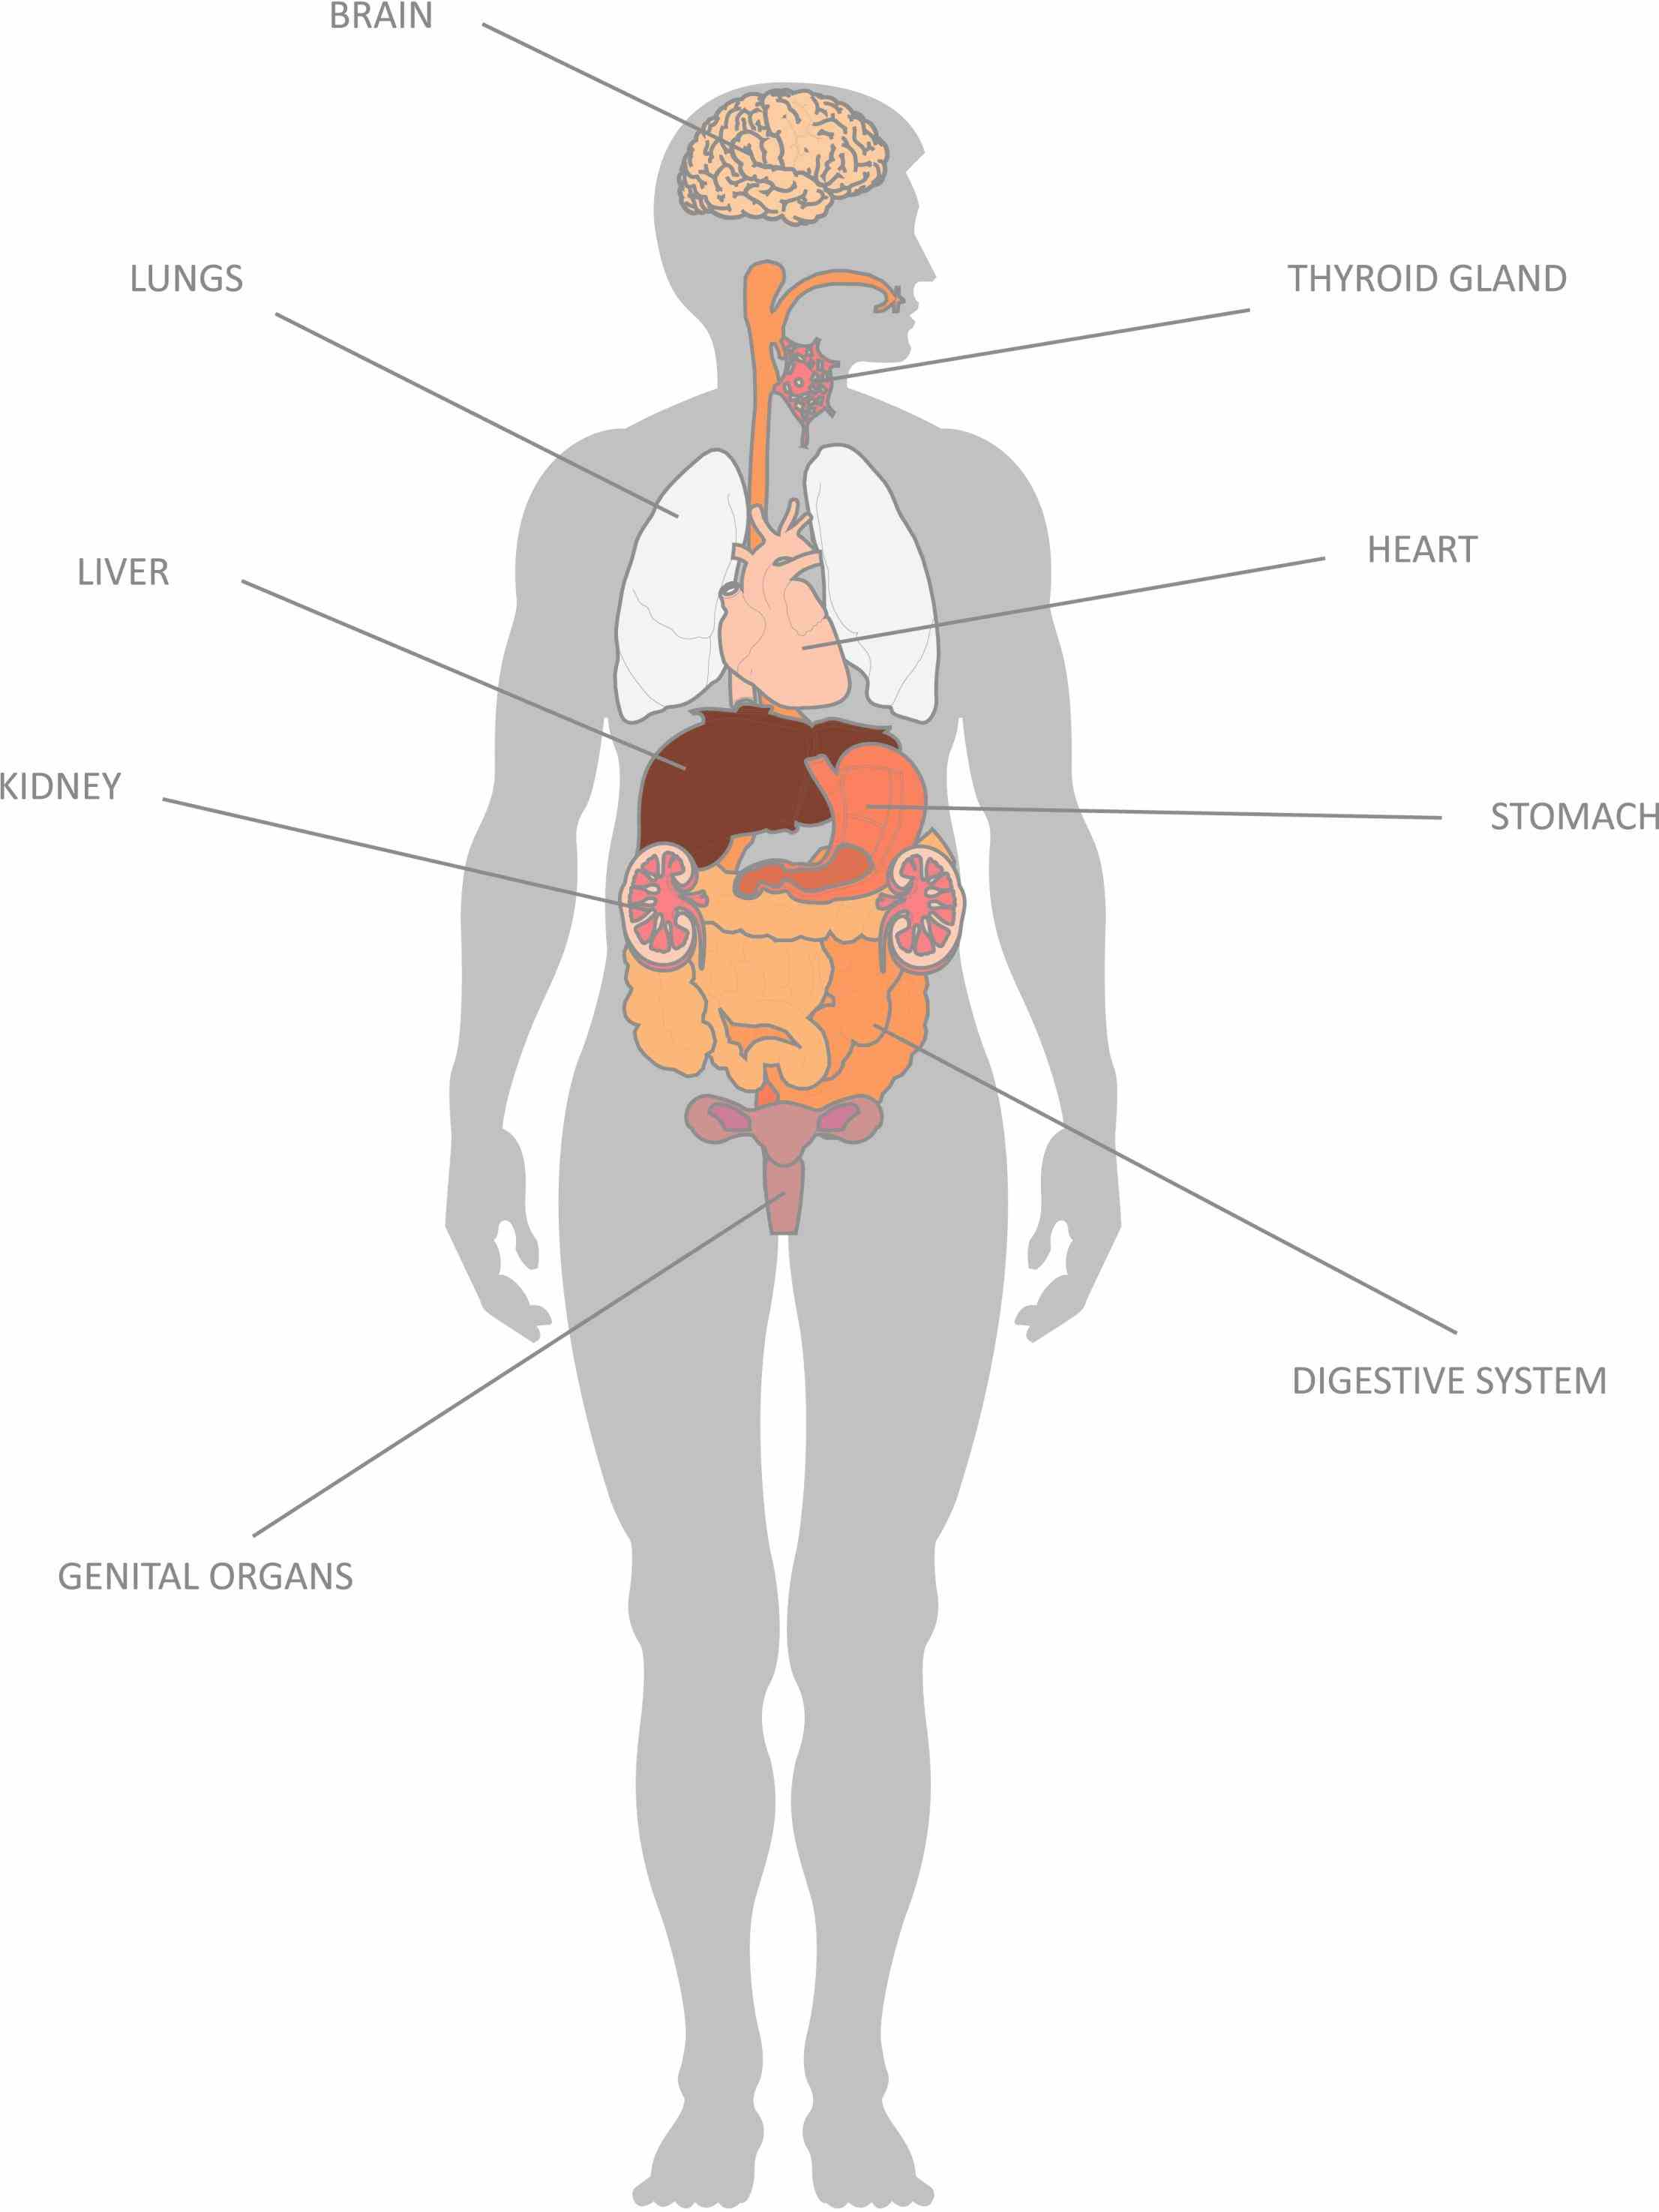 with functions there are almost in a human body which vary according to their sizes or actions other major